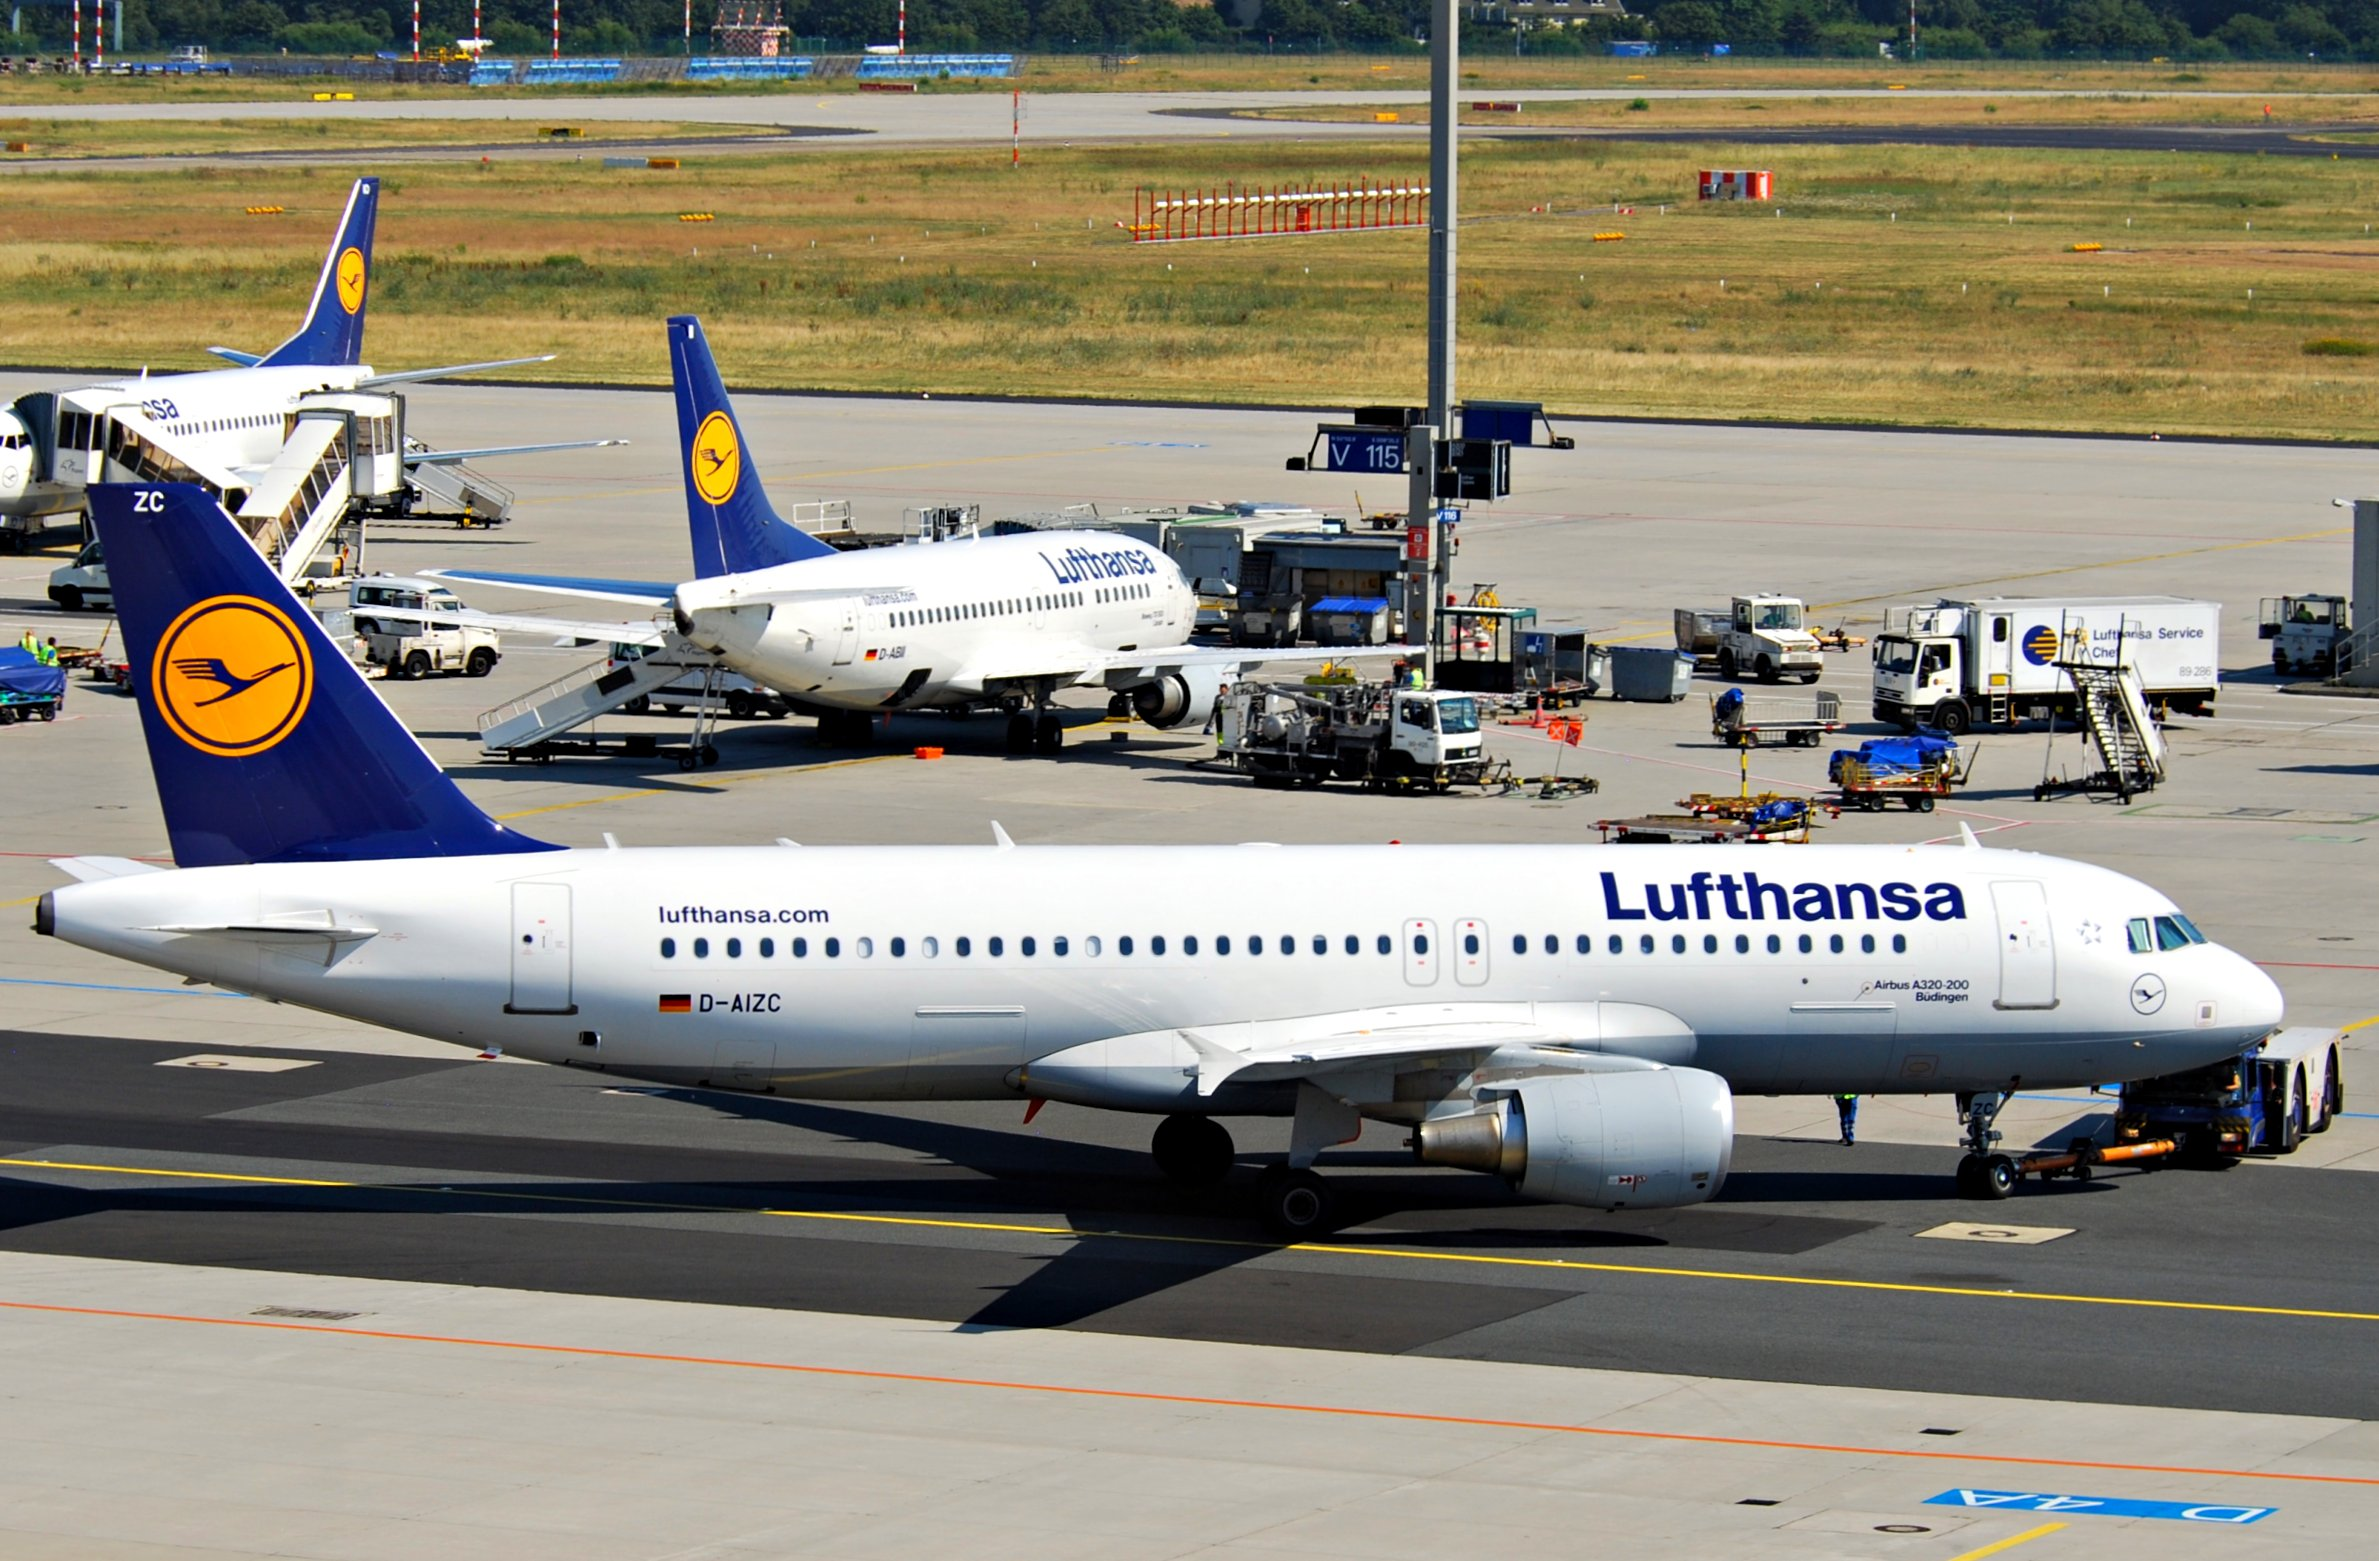 file lufthansa airbus a320 214 d aizc fra 580dn 4781557254 jpg wikimedia commons. Black Bedroom Furniture Sets. Home Design Ideas